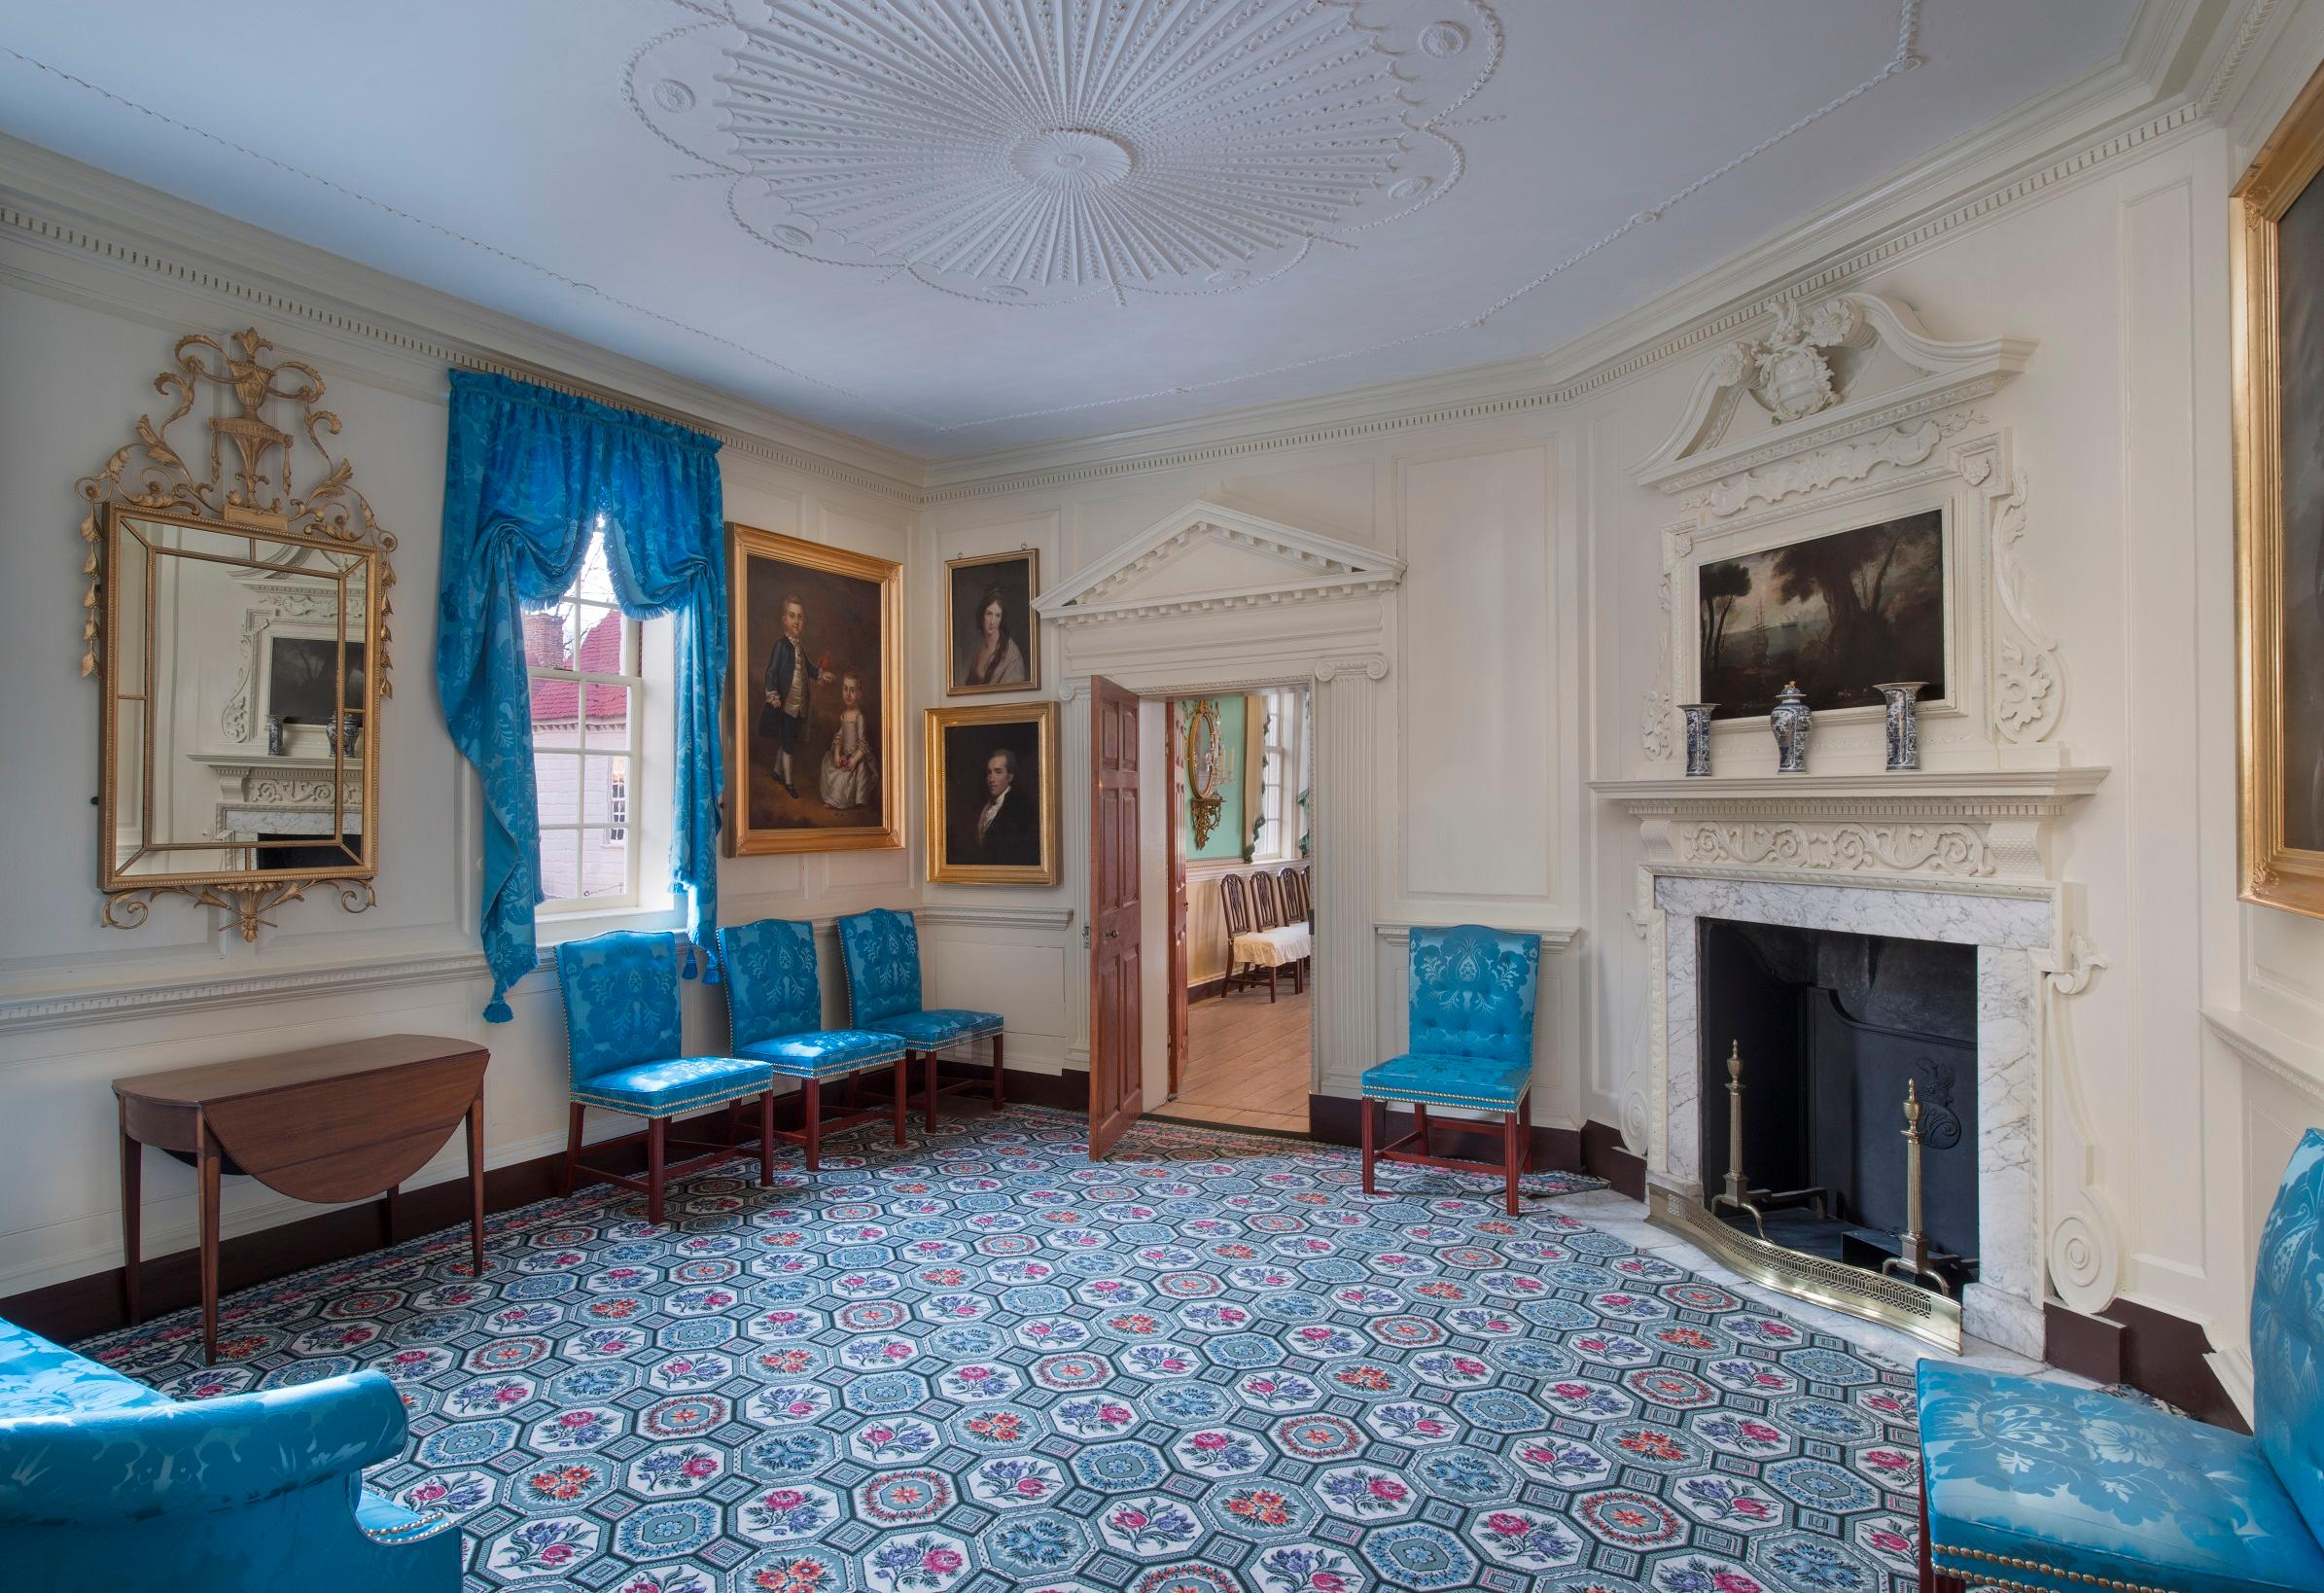 Front Parlor after the restoration, Gavin Ashworth.